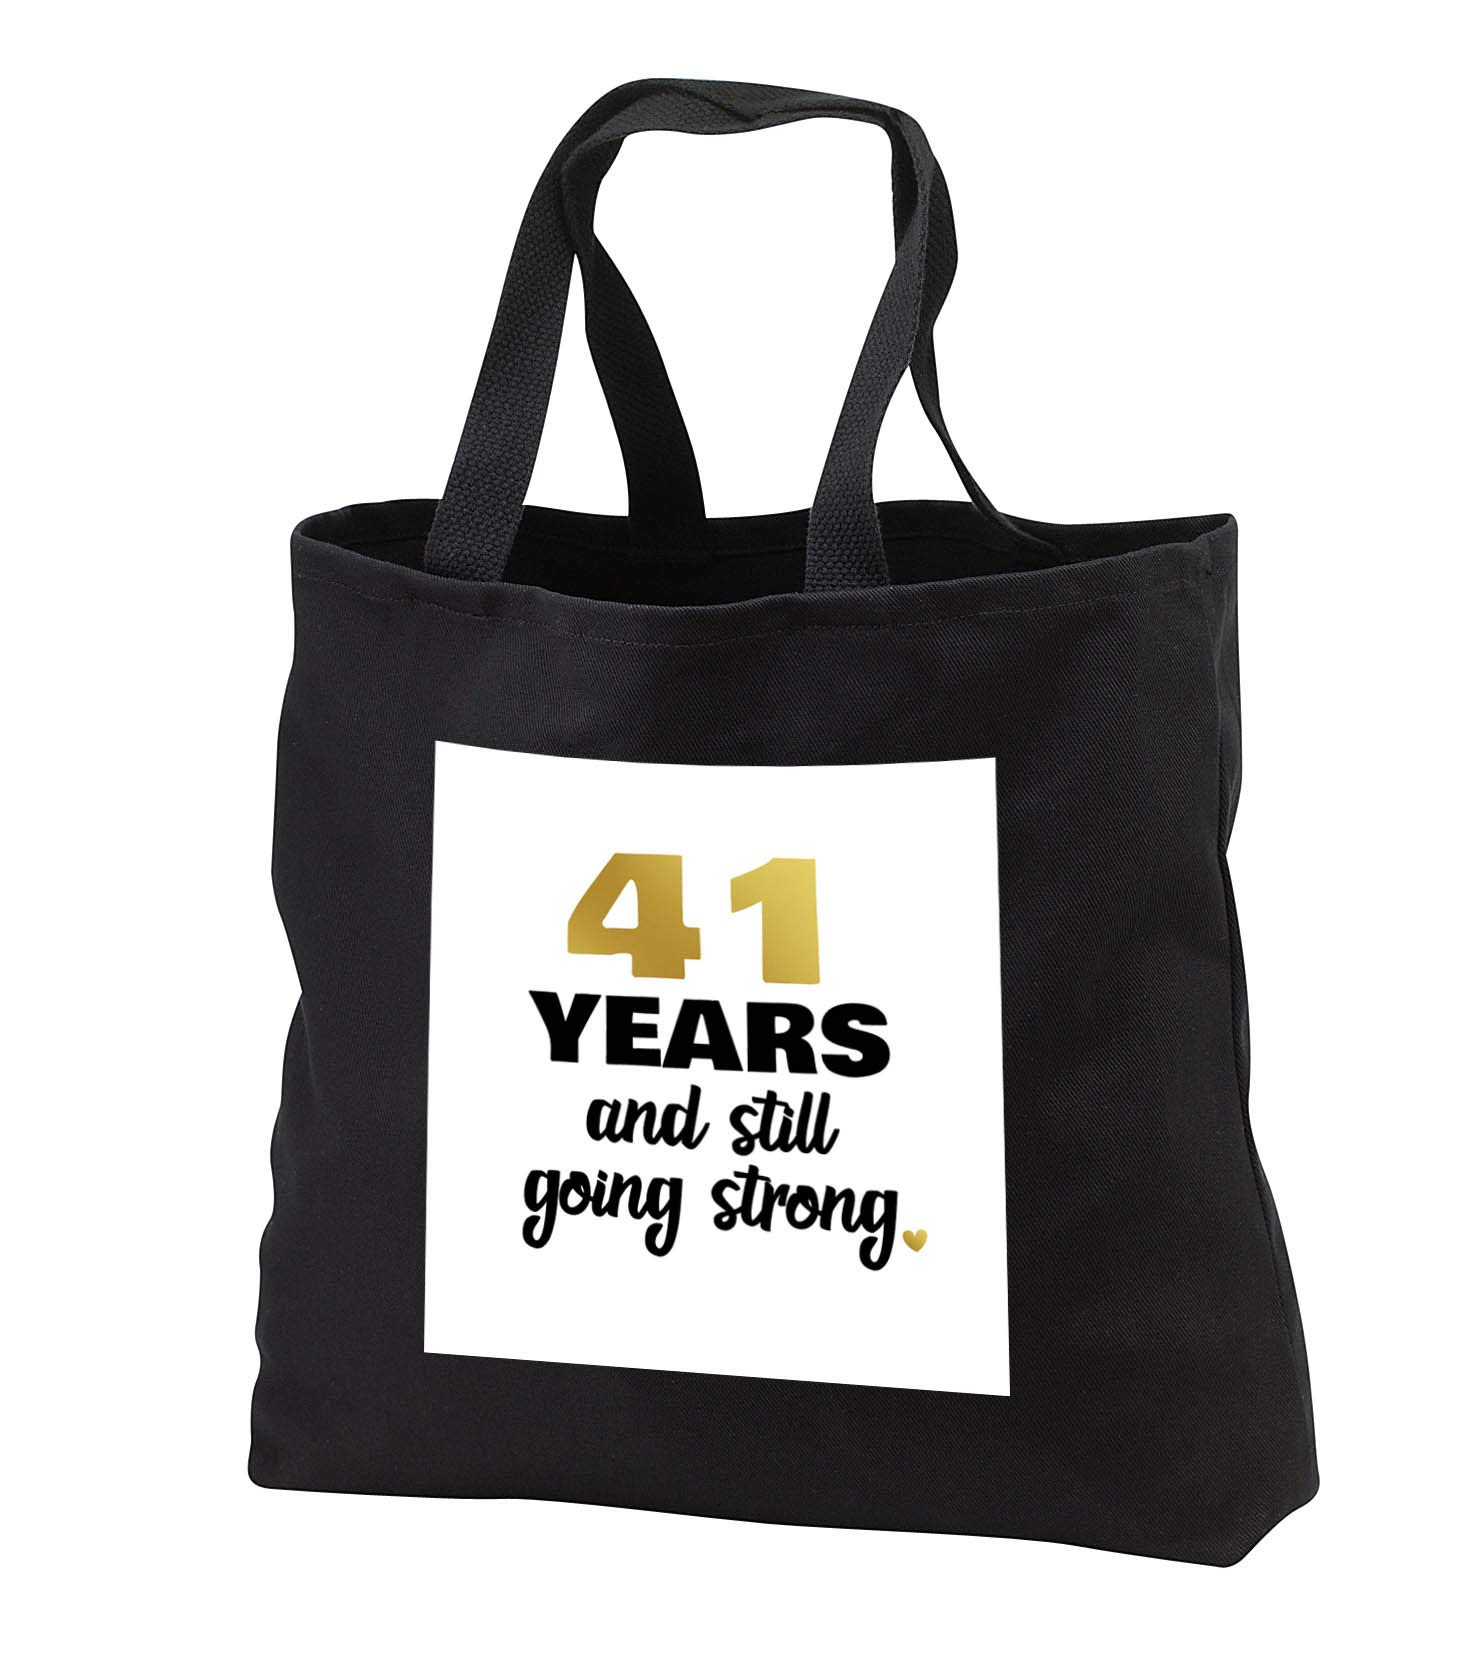 Janna Salak Designs Anniversary - 41 Year Anniversary Still Going Strong 41st Wedding Anniversary Gift - Tote Bags - Black Tote Bag 14w x 14h x 3d (tb_289676_1)